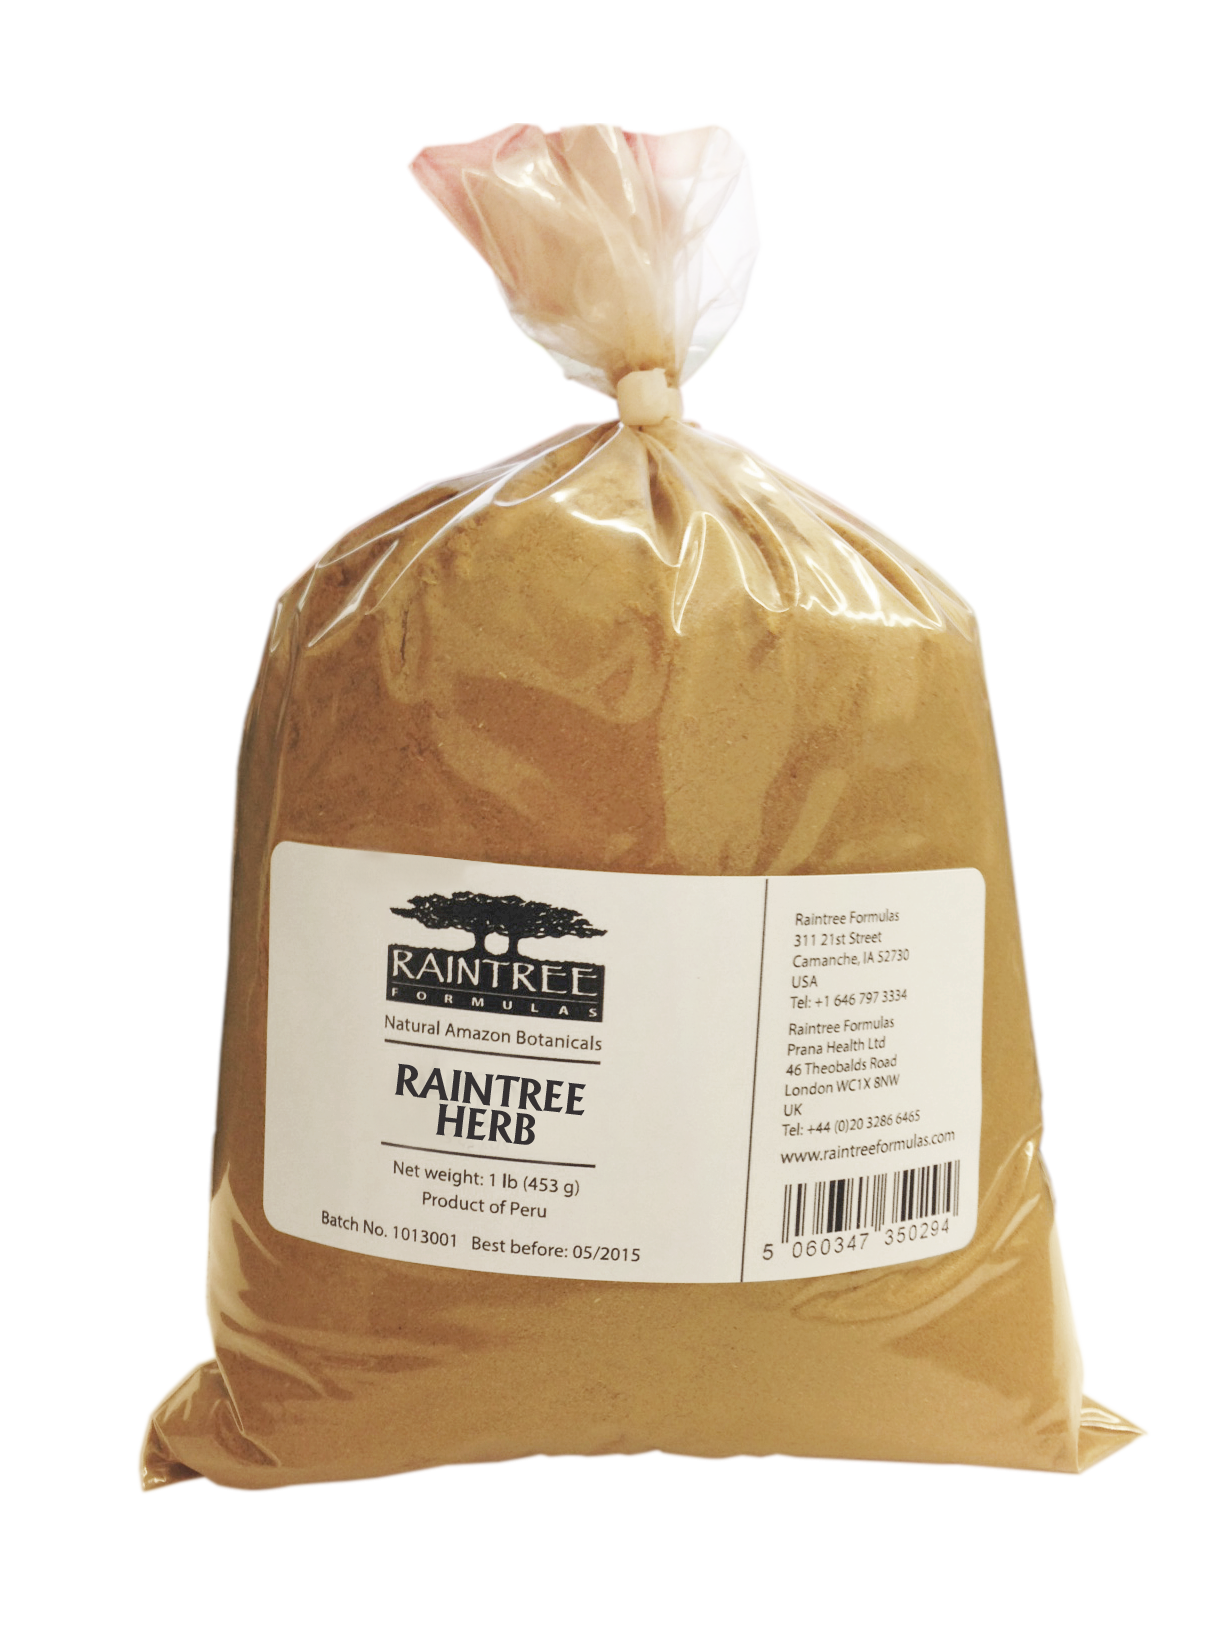 Raintree Cat's Claw Powder 1lb